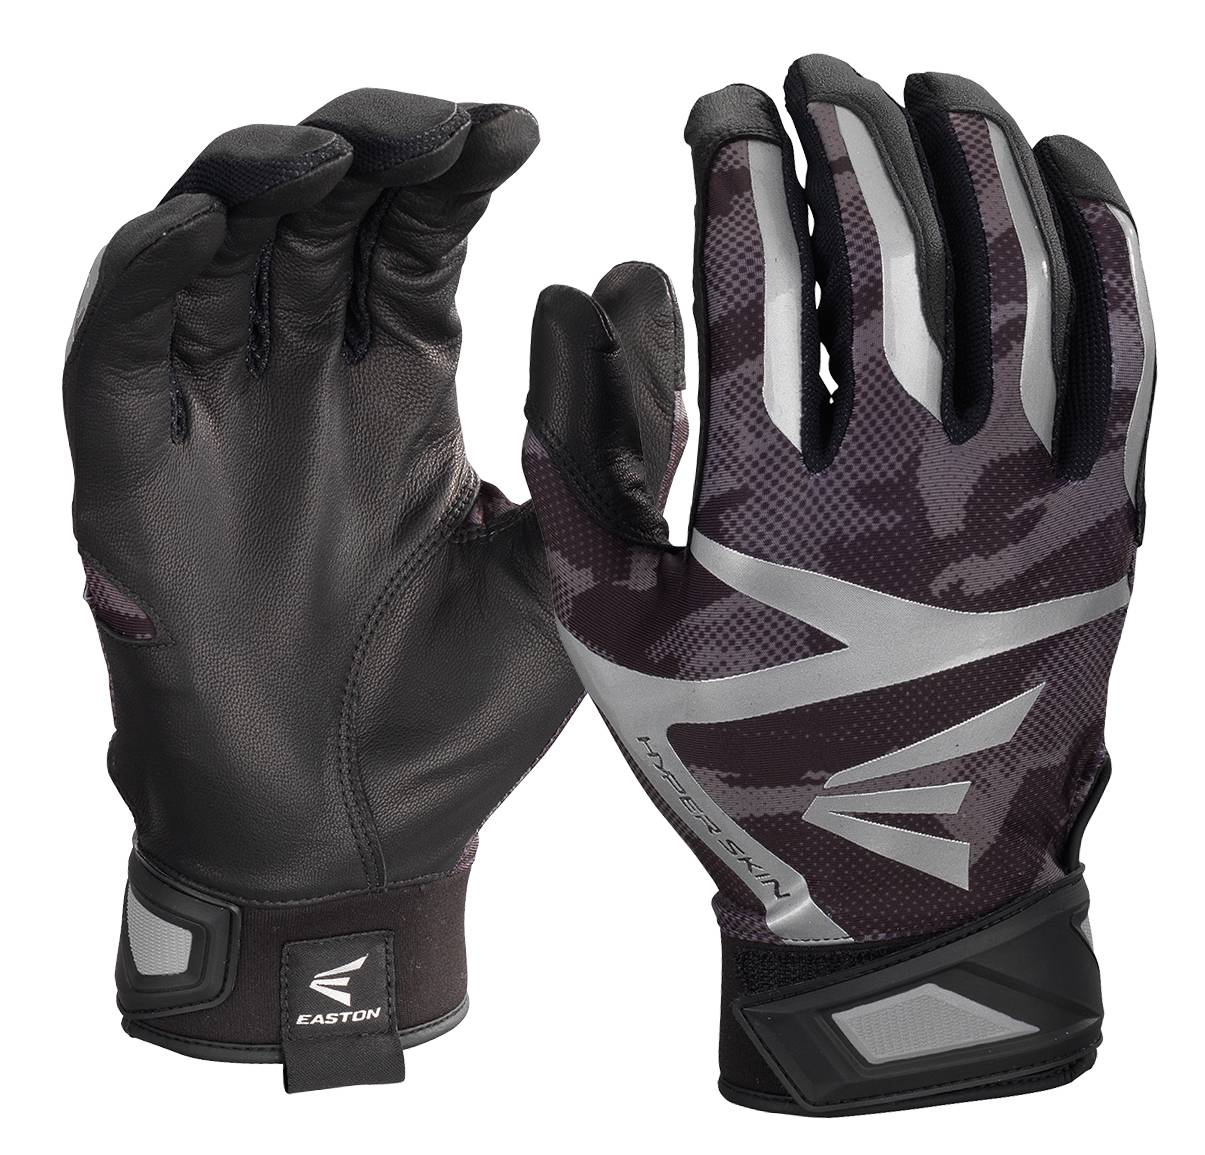 Black batting gloves - Constructed With A Tacky Goatskin Leather Palm The Easton Z7 Hyperskin Adult Baseball Batting Gloves Provide An Excellent Grip On Your Bat So You Can Hit